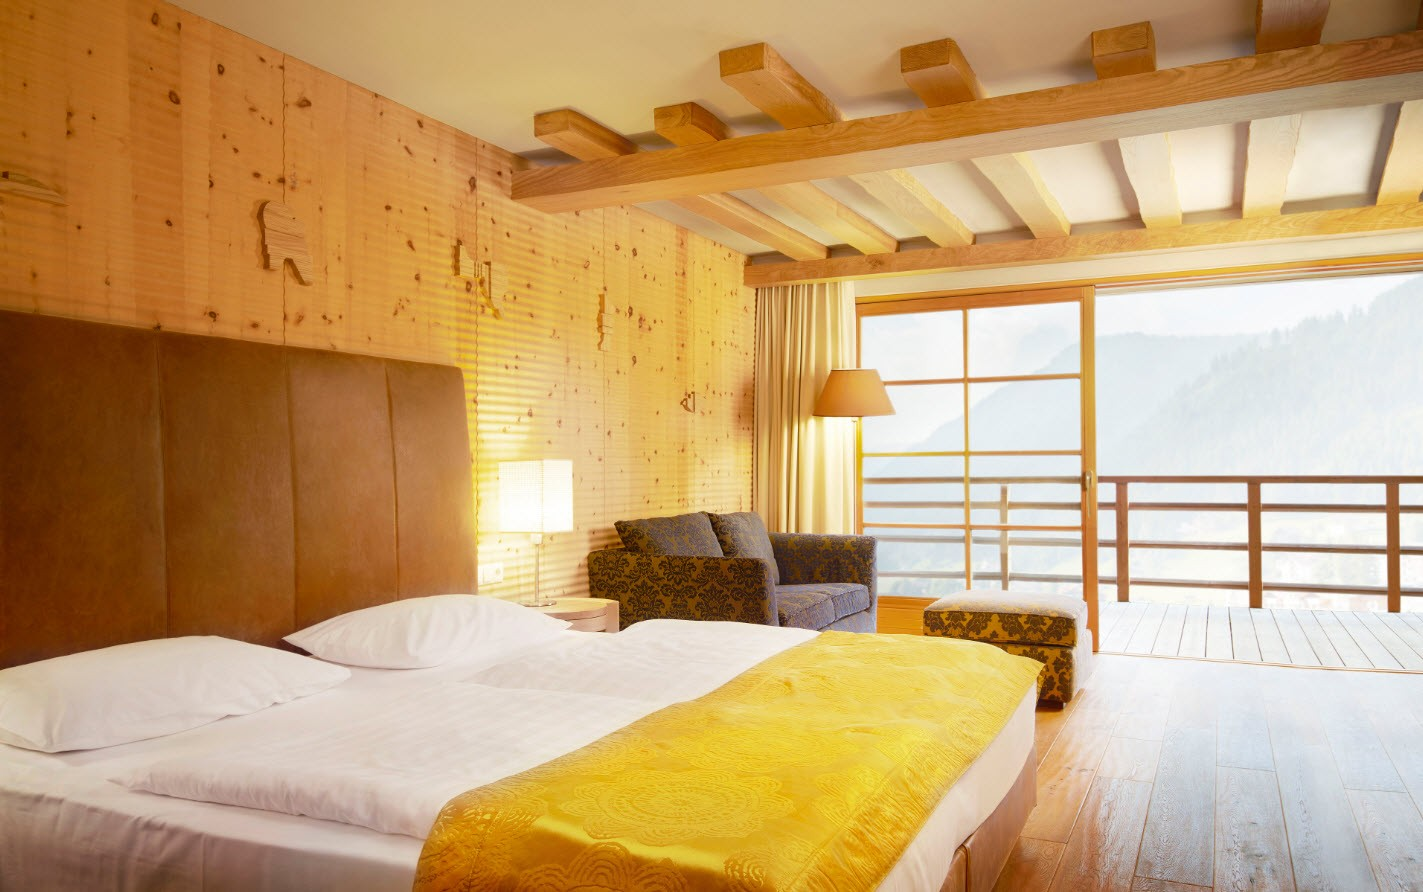 Adler Spa Resort Balance - Dormir - Dolomites (c) Adlersparesorts